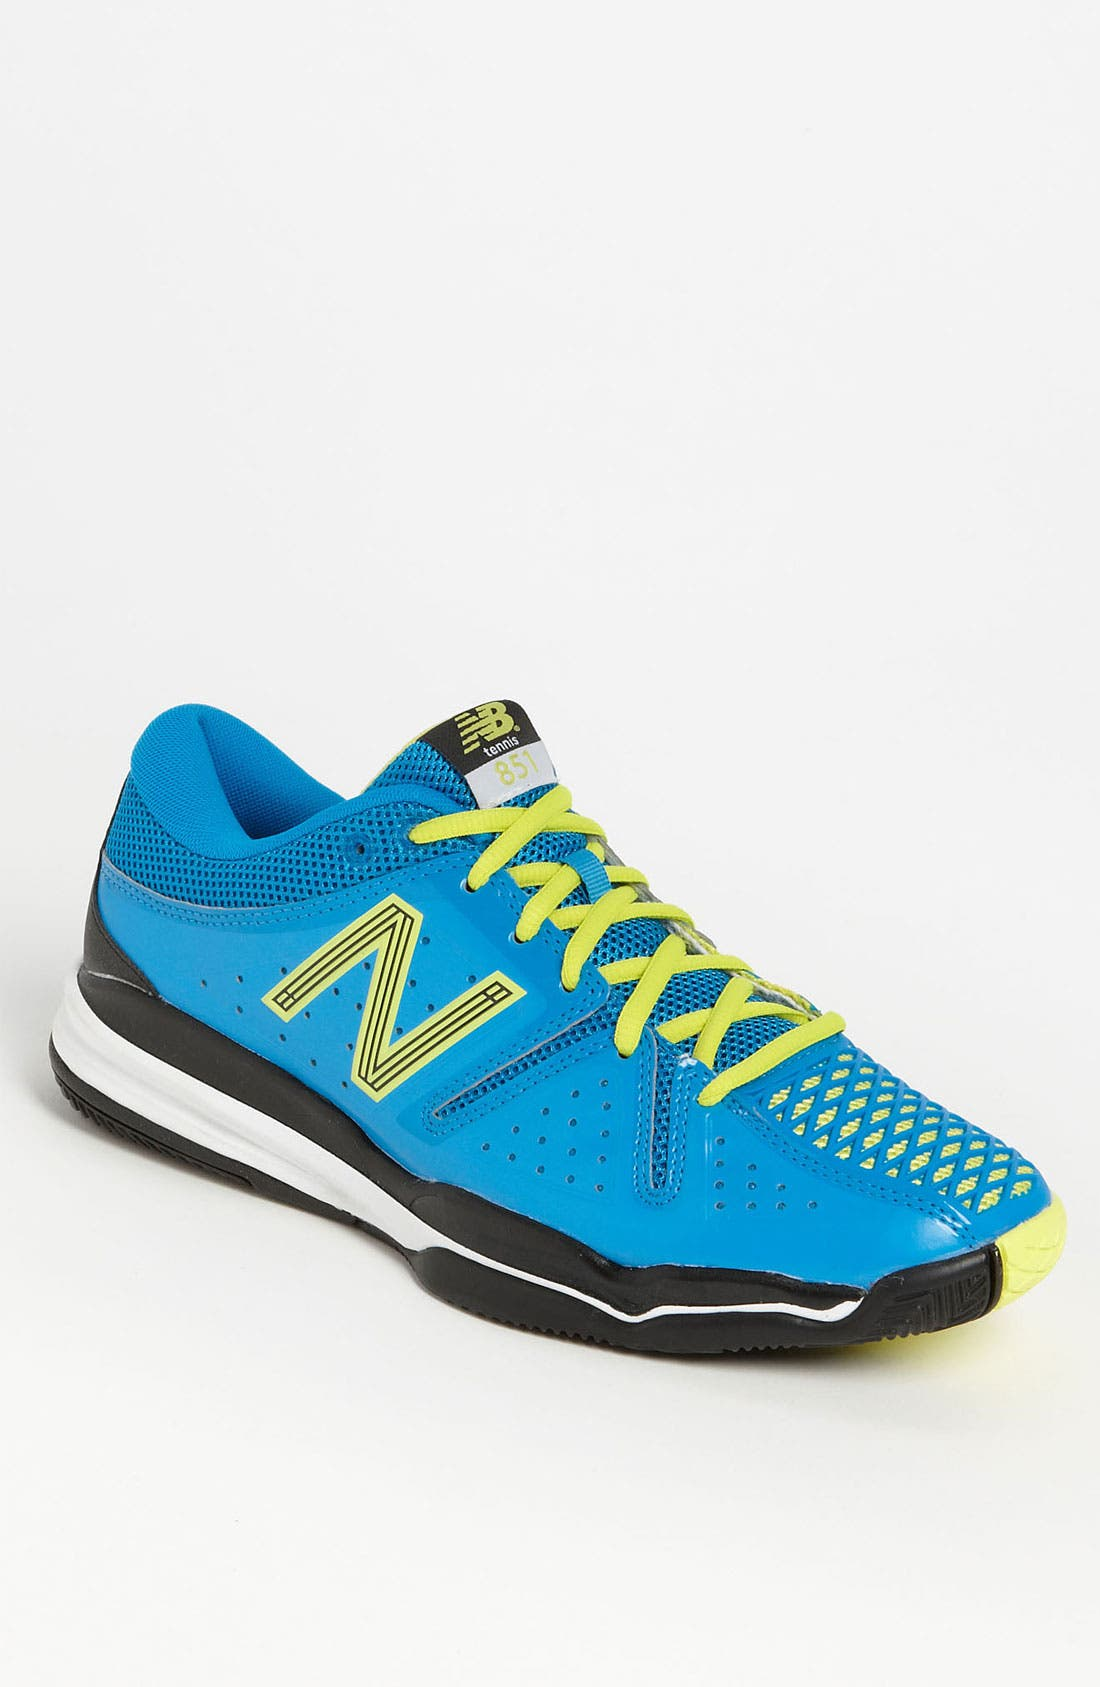 Main Image - New Balance '851' Tennis Shoe (Men)